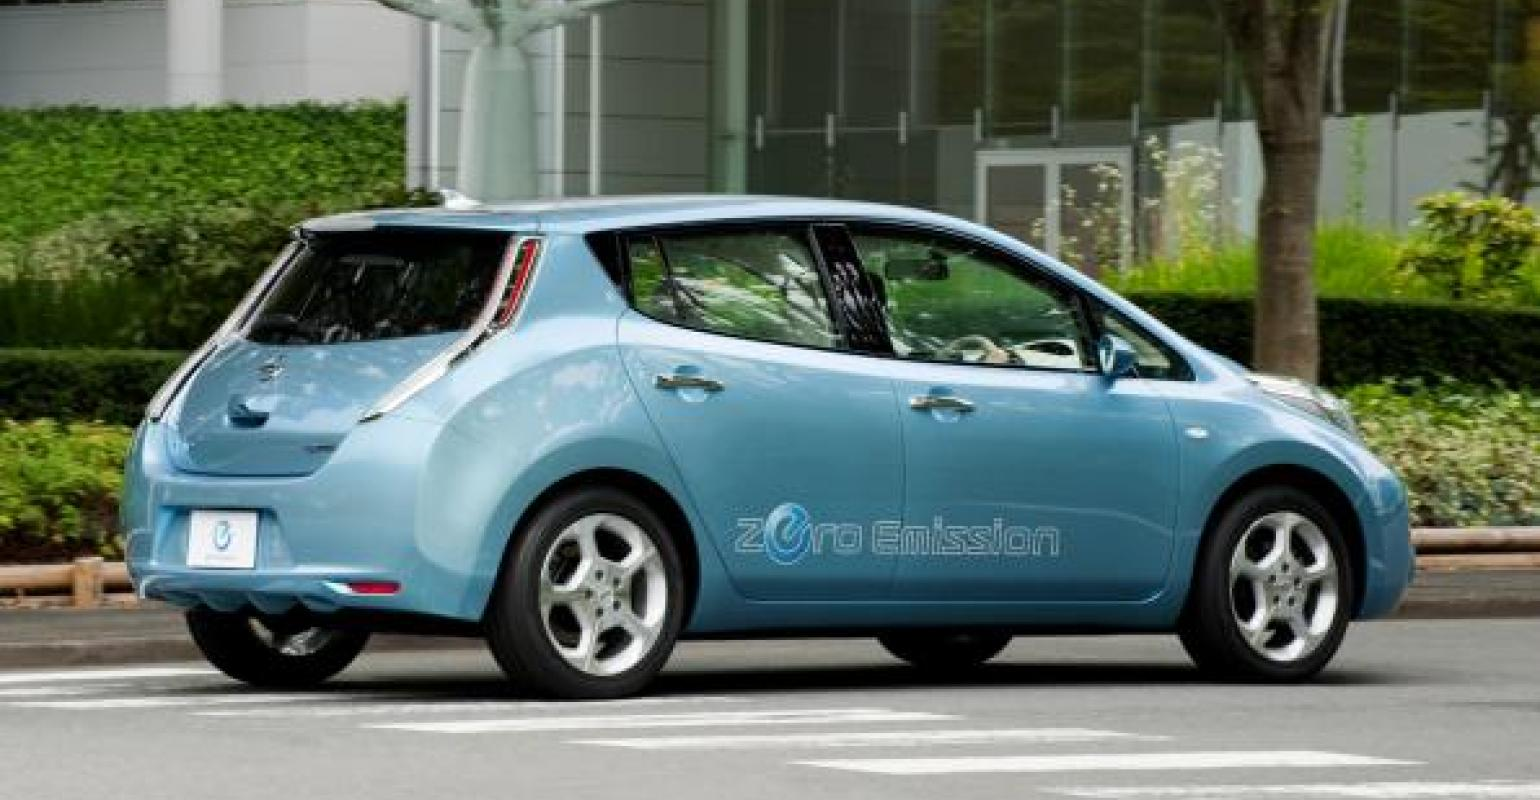 Reaching 545 Mpg Not Dependent On Expensive Batteryelectric Vehicles Such As Nissan Leaf